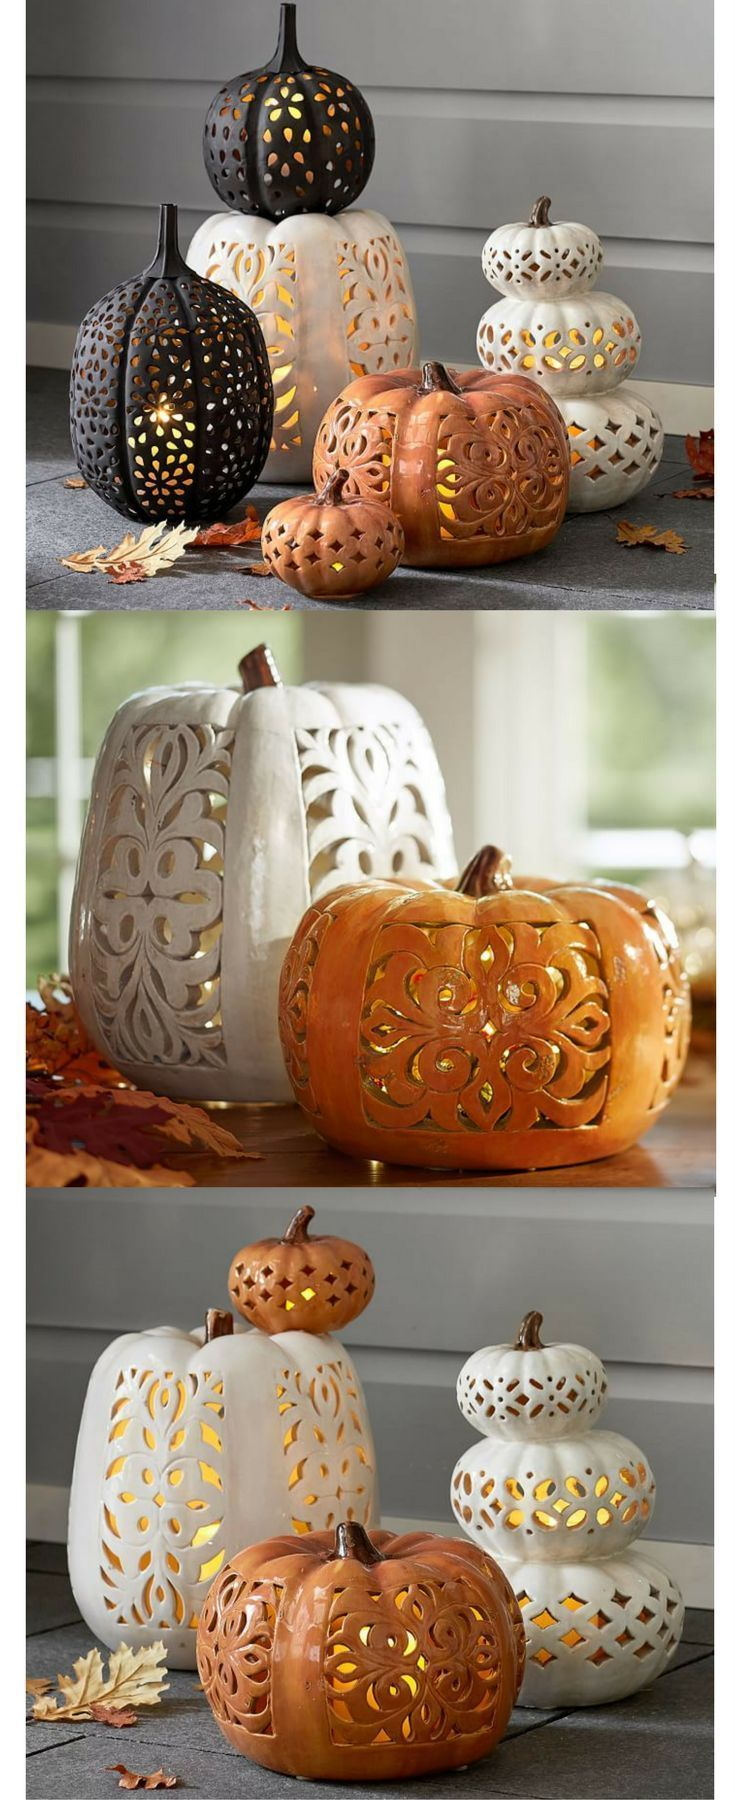 Ceramic pumpkins - love the filigree design of the pumpkins!  put a flickering flameless candle inside and it would be beautiful!  Fall decor, fall pumpkin decor, Halloween decor, Thanksgiving decor #ad #affiliatelink